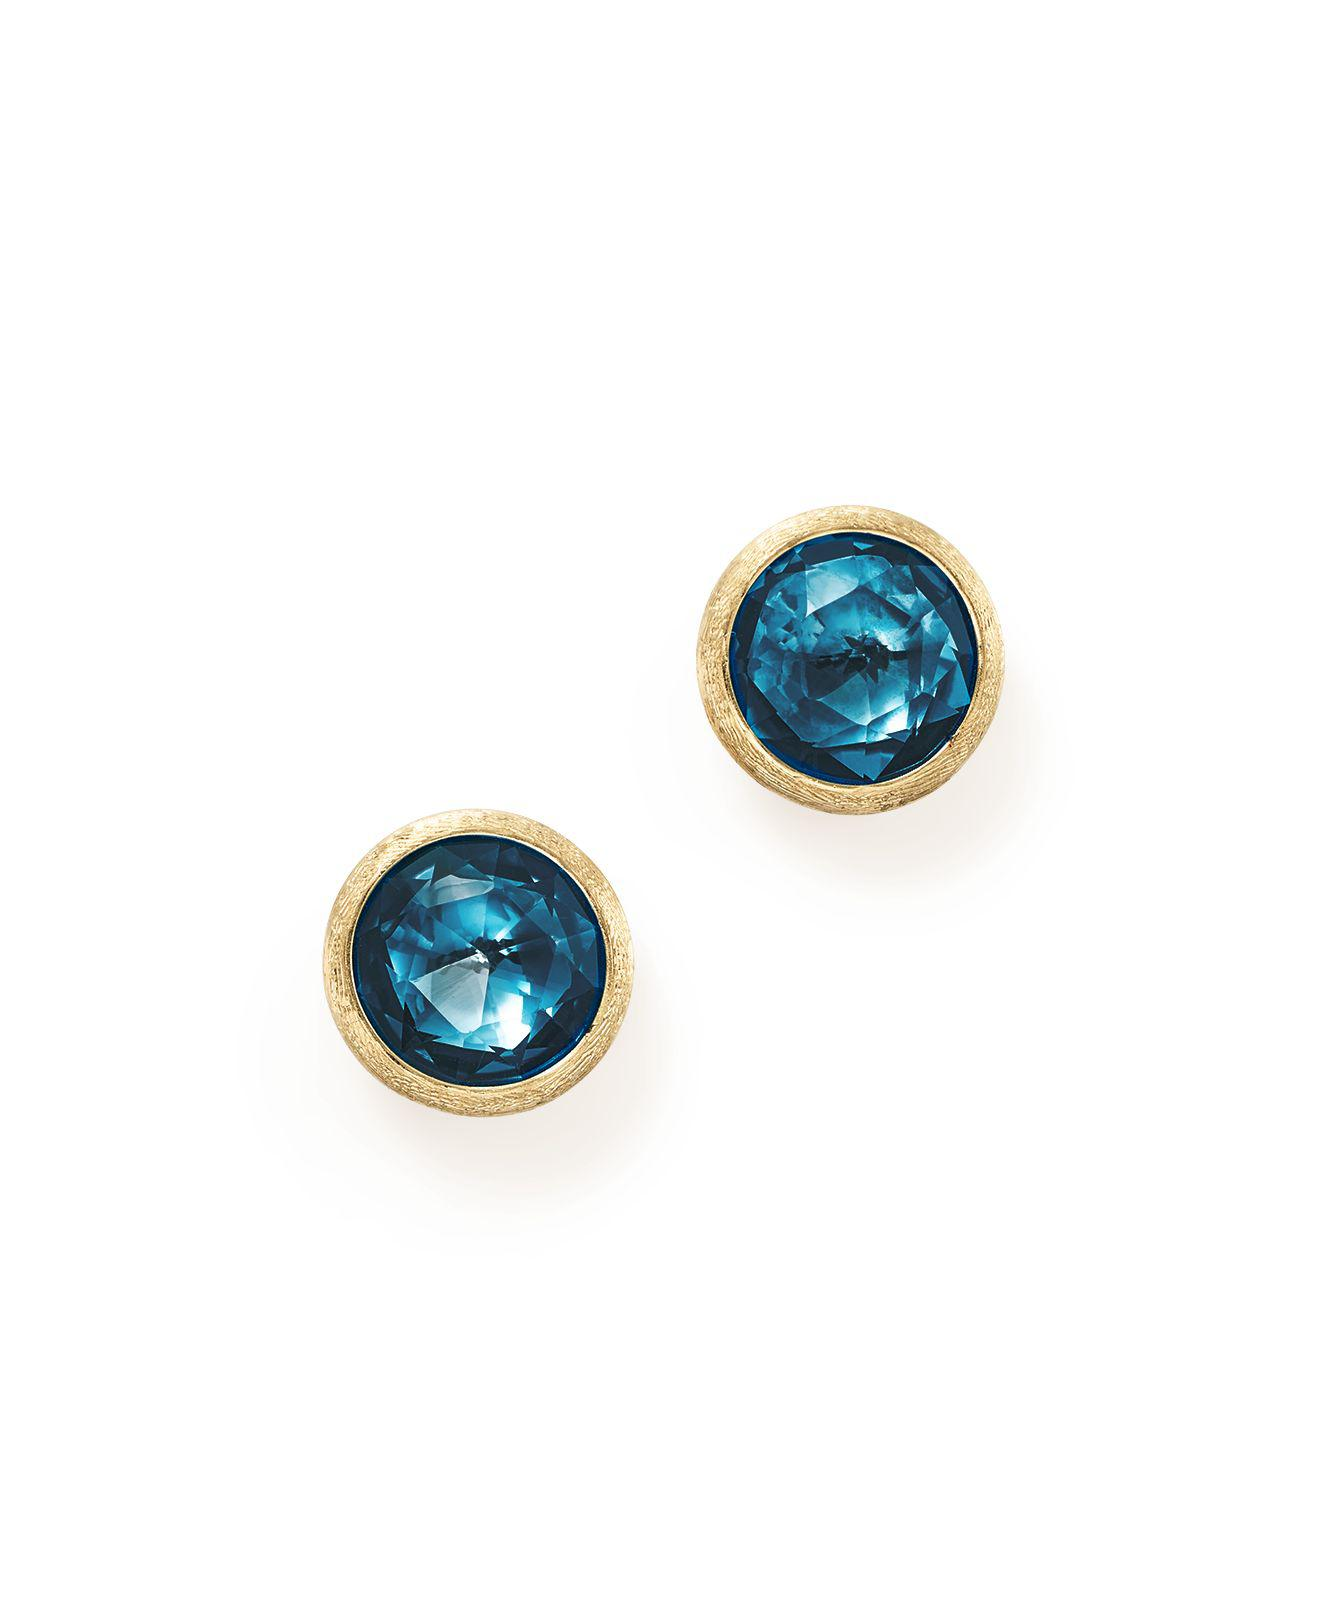 natural mosaic fine jewelry in lamoon topaz platinum stud sterling item fashion from silver classic oval blue earrings plated earring